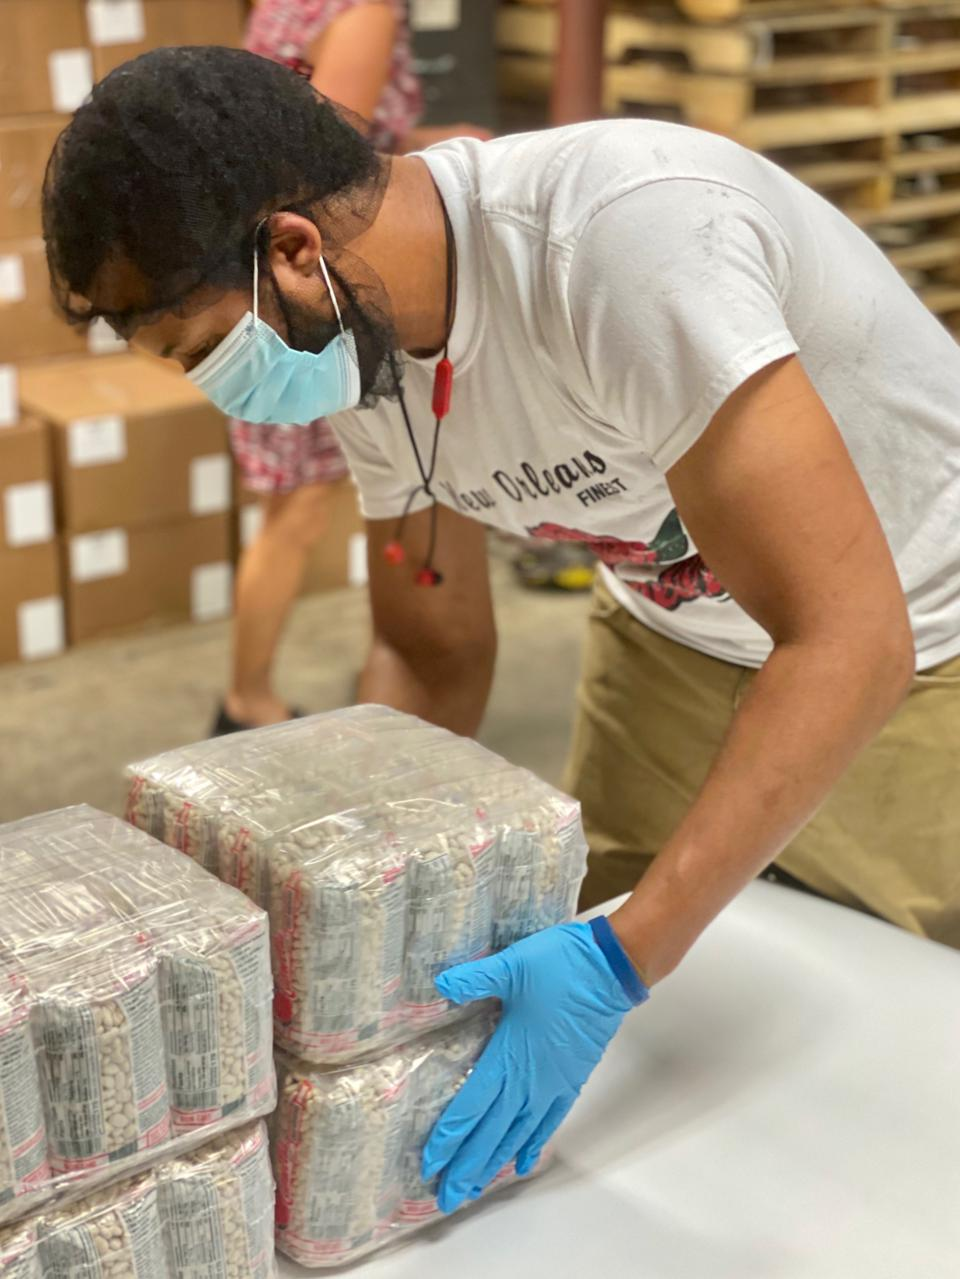 A worker packs bags of red beans for shipping.